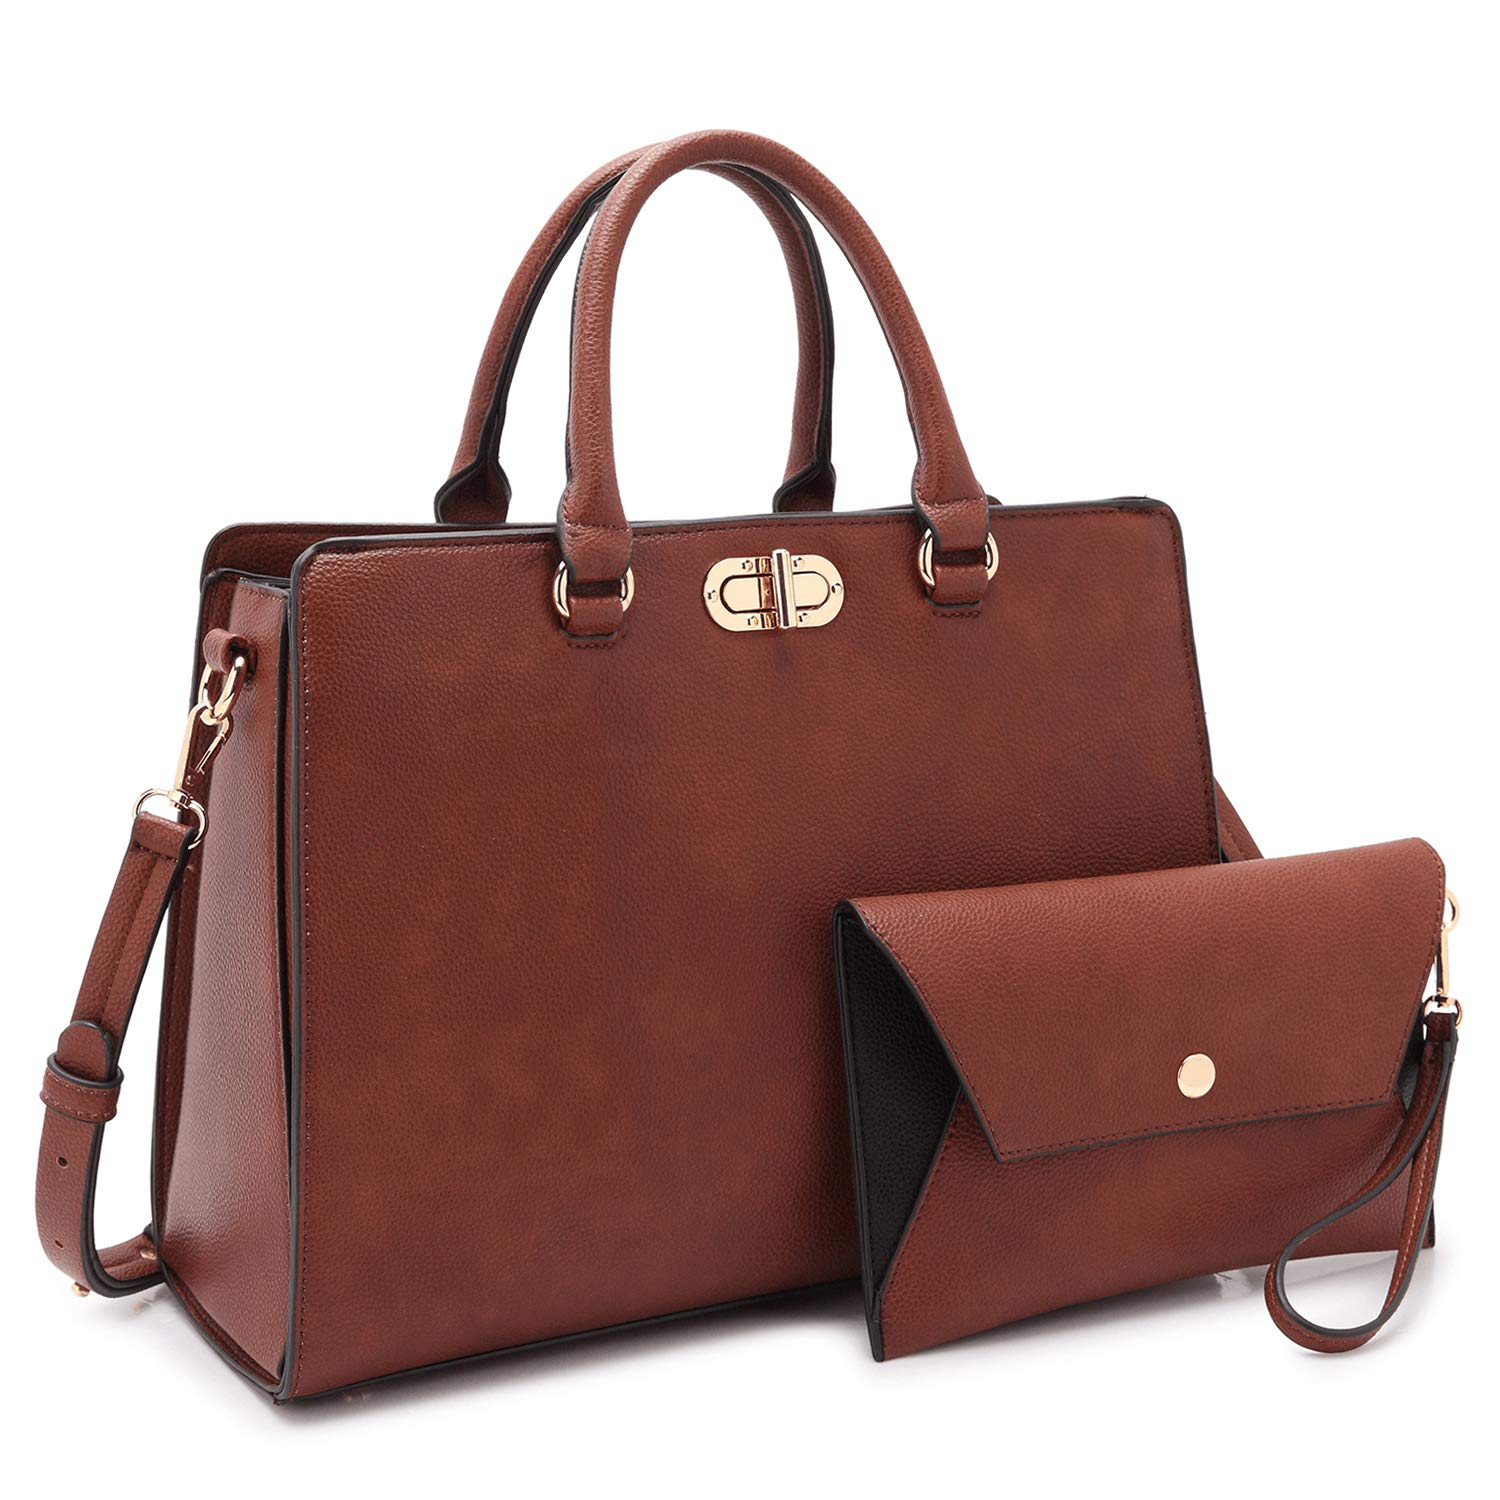 Coffee 1988 MMK Collection Women's Satchel Handbag Vegan Leather Medium SizeDesigner Handbags for Women